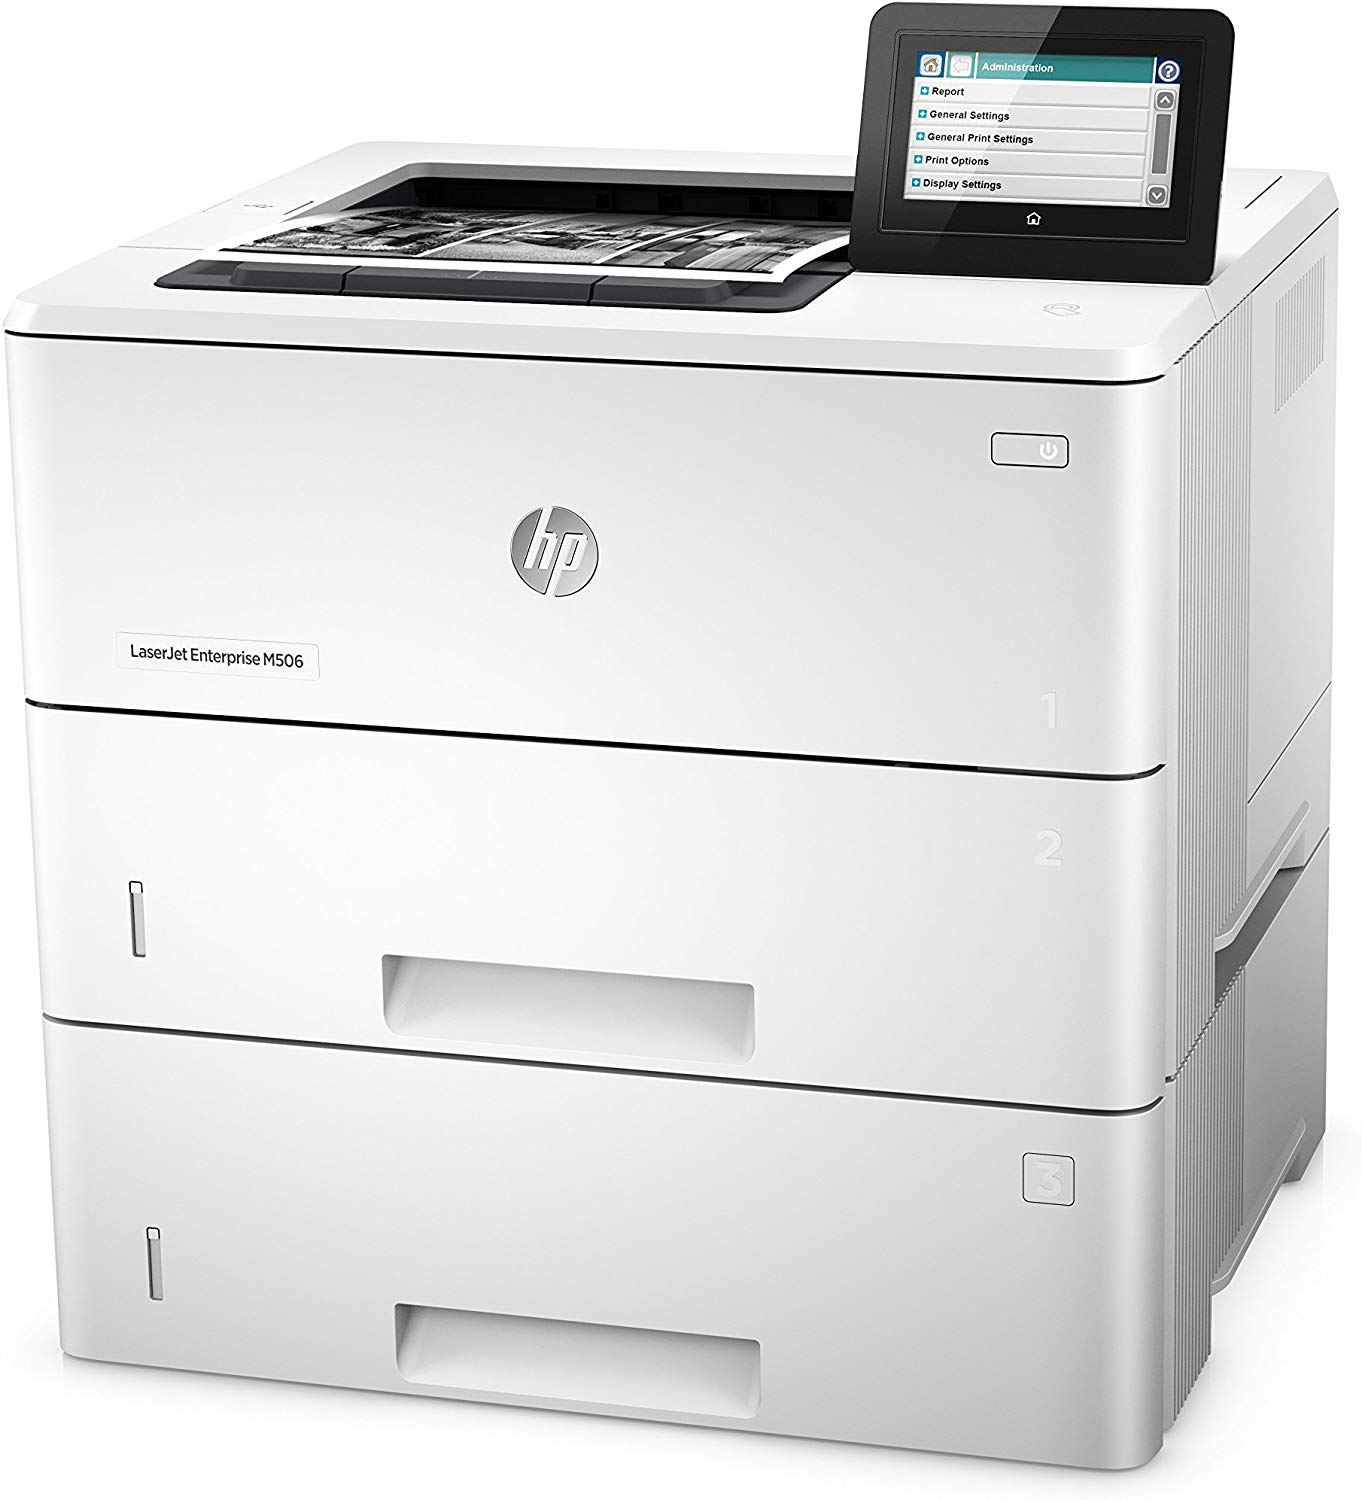 HP LaserJet Managed M506xm Mono Laser Printer, New (F2A67A)